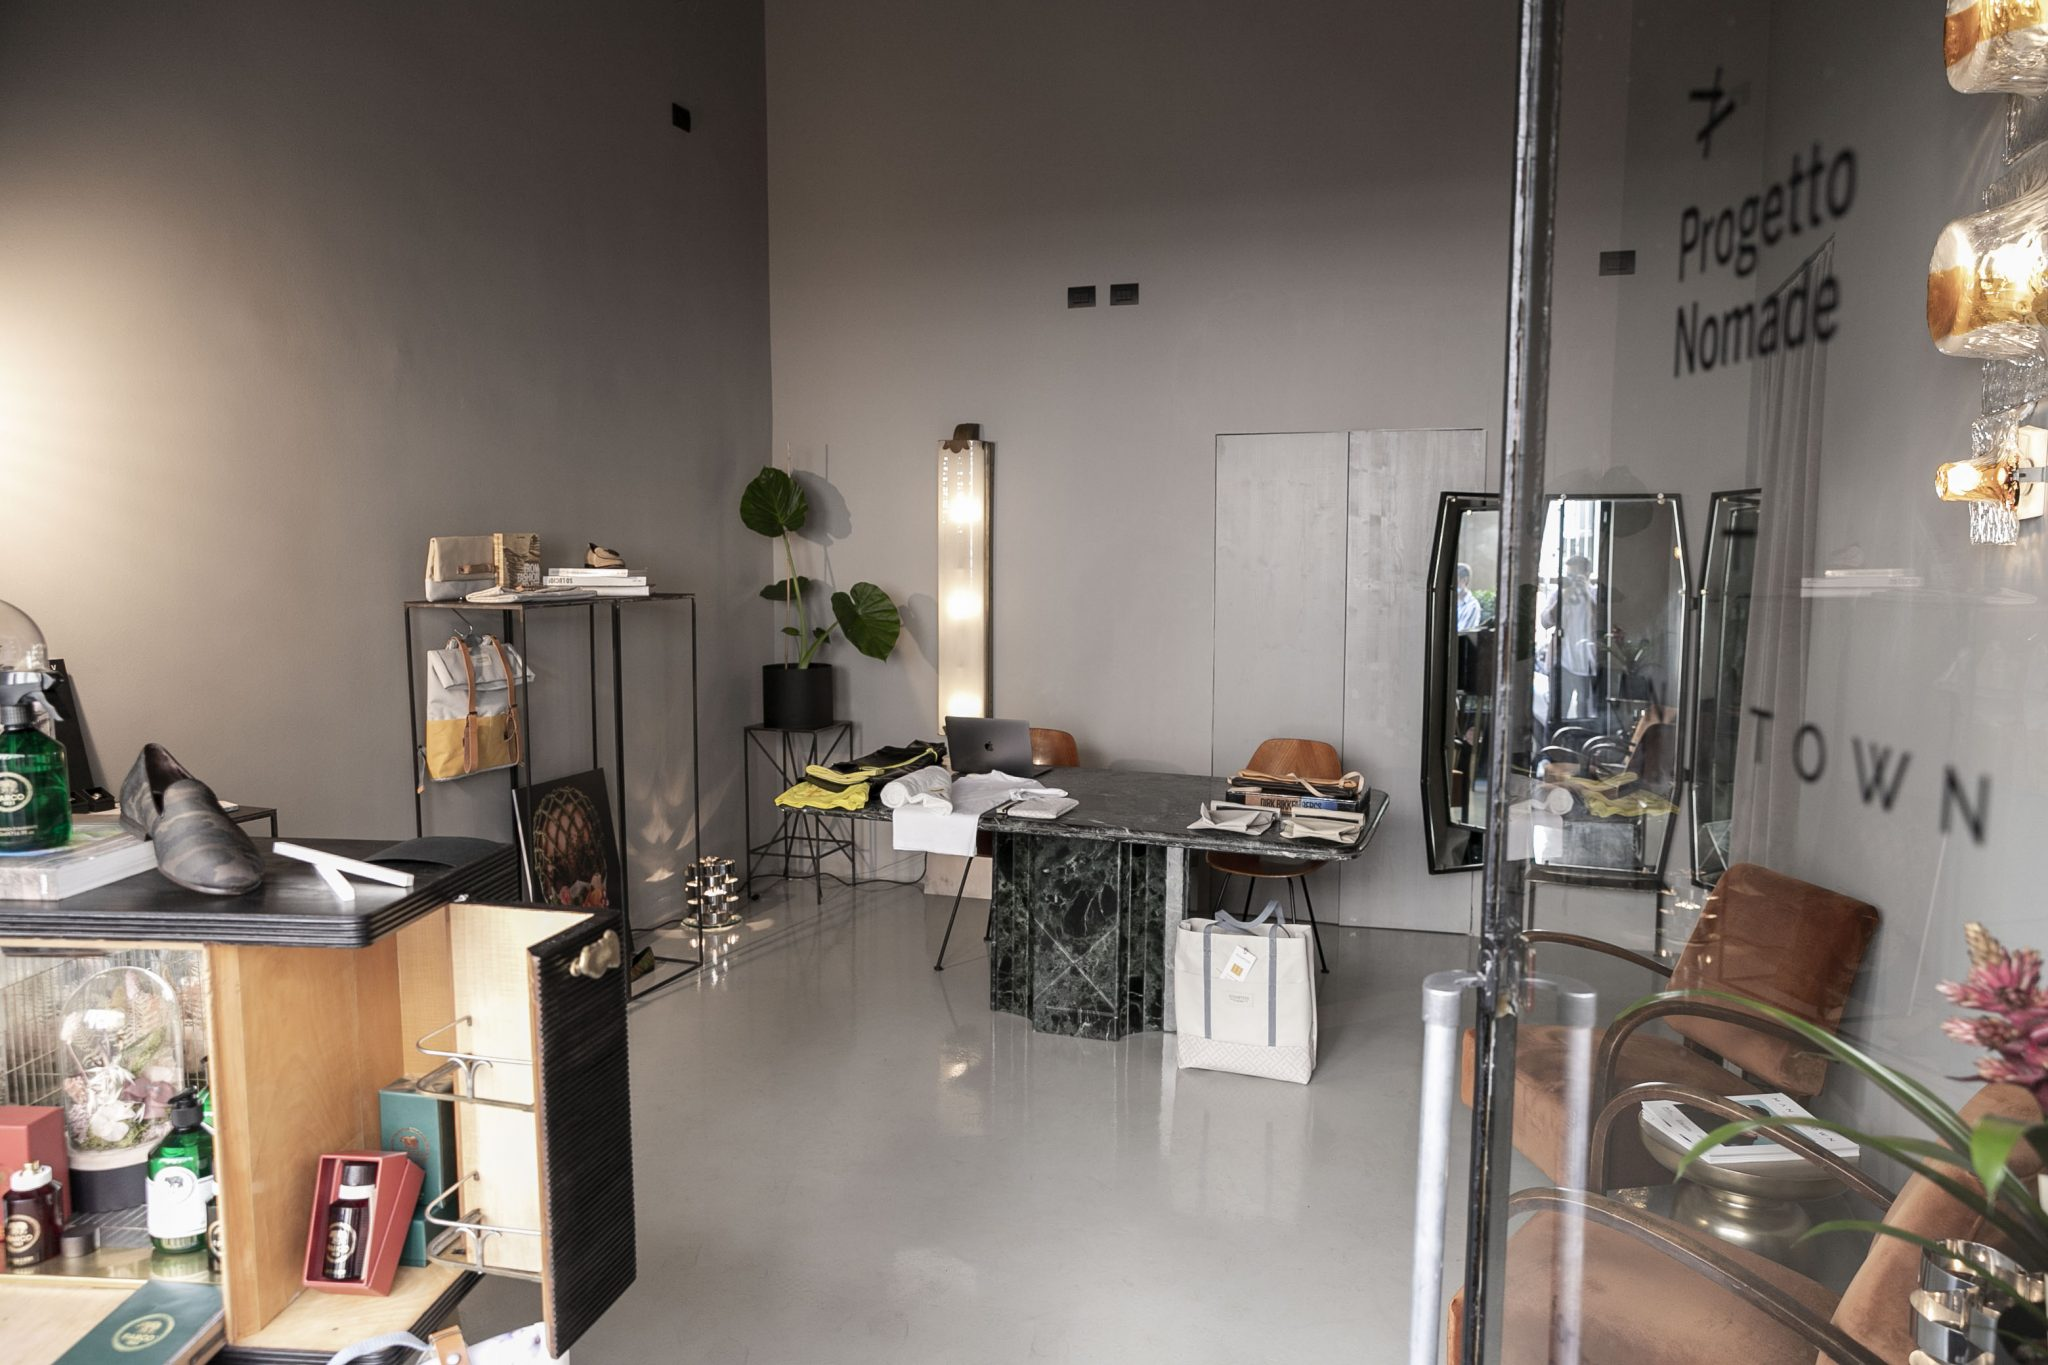 MANINTOWN to launch multifunctional studio space, 'Manintown + Progetto Nomade' in Milan